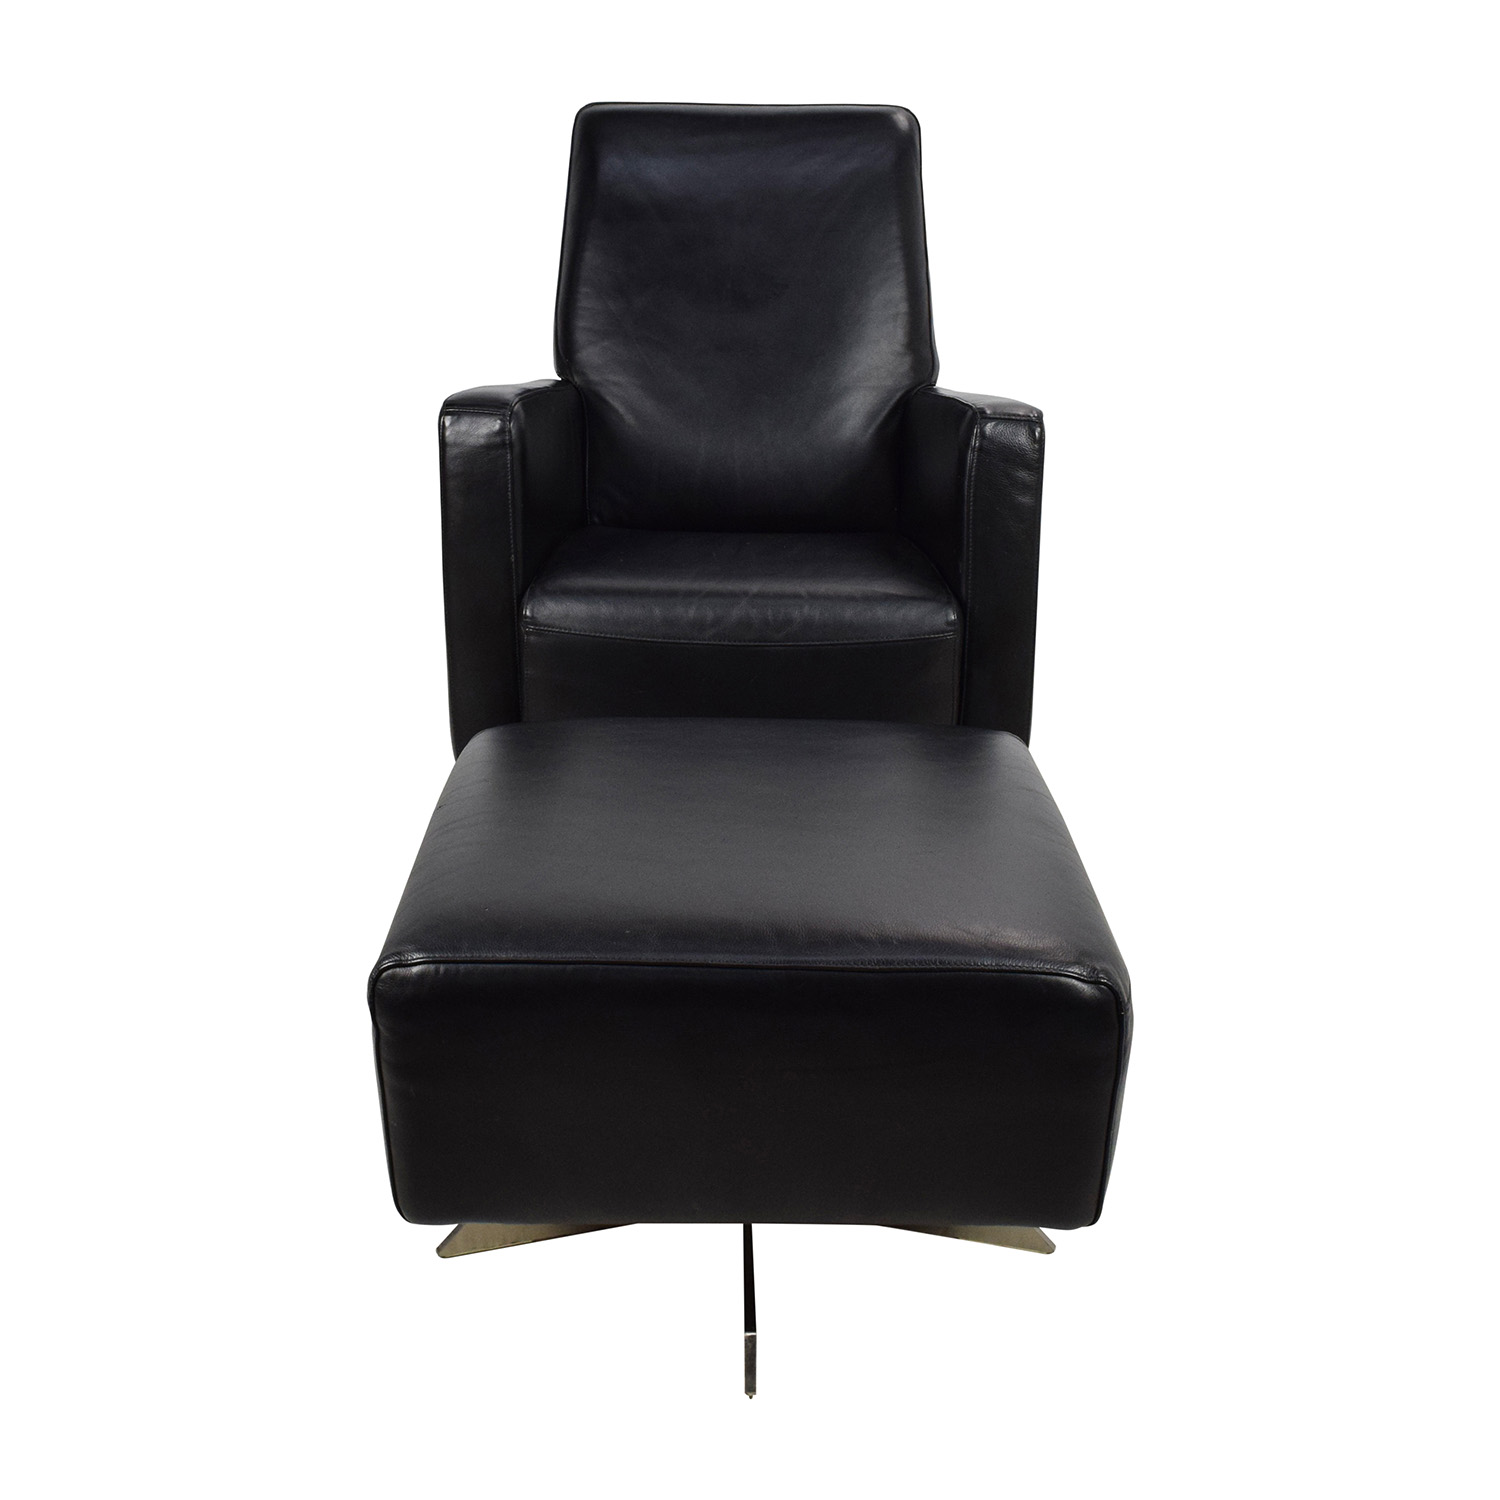 37% OFF Society Social Society Social Crosby Street Swivel Chairs